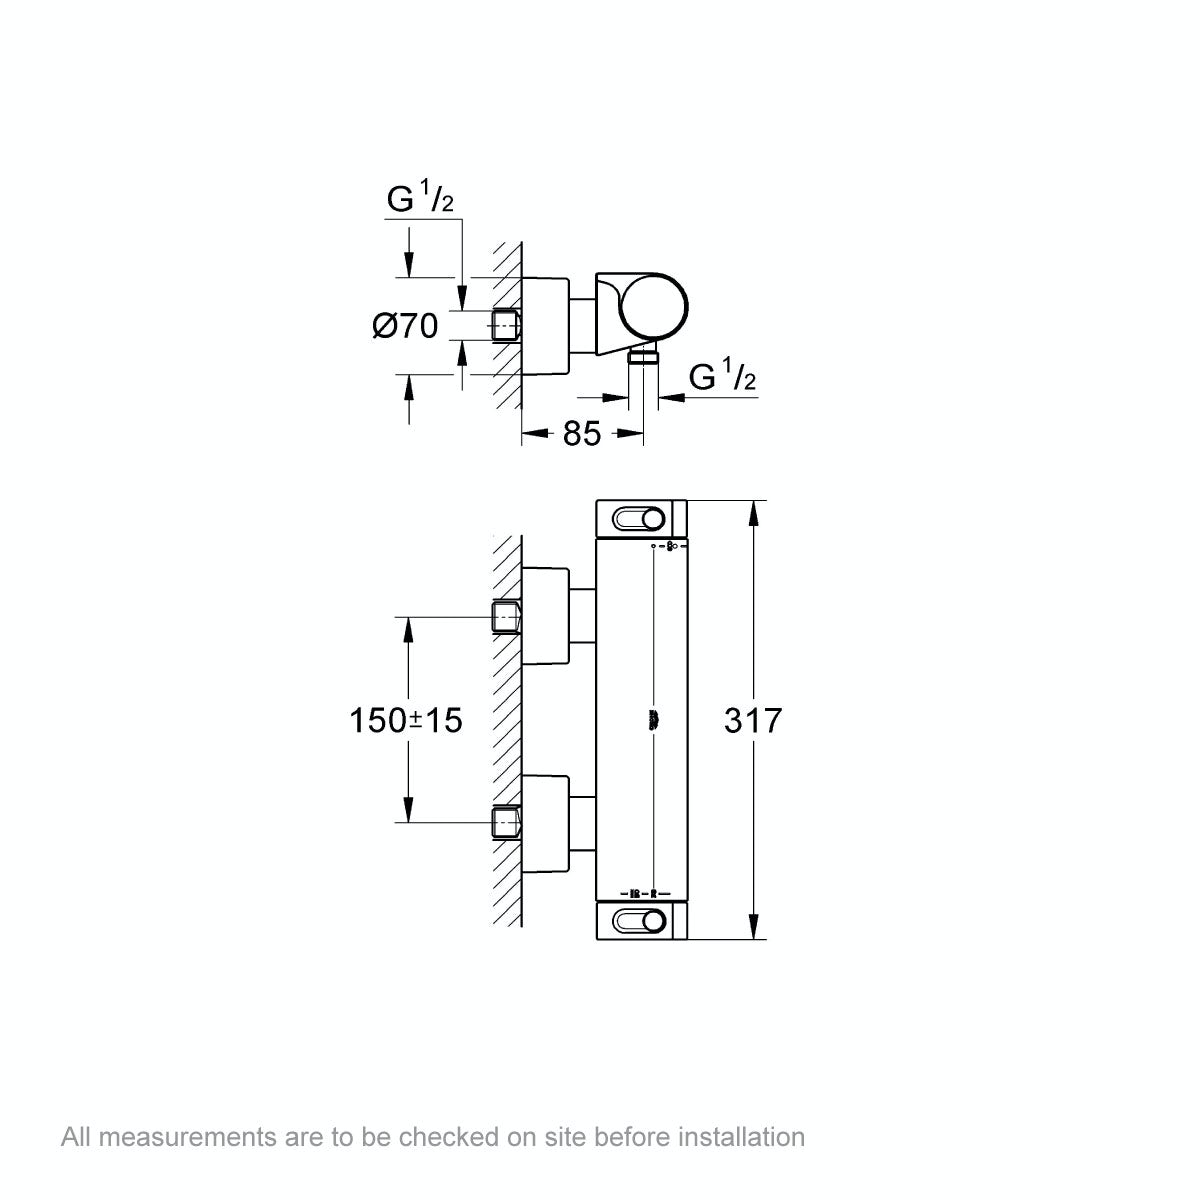 Dimensions for Grohe Grohtherm 2000 thermostatic shower valve